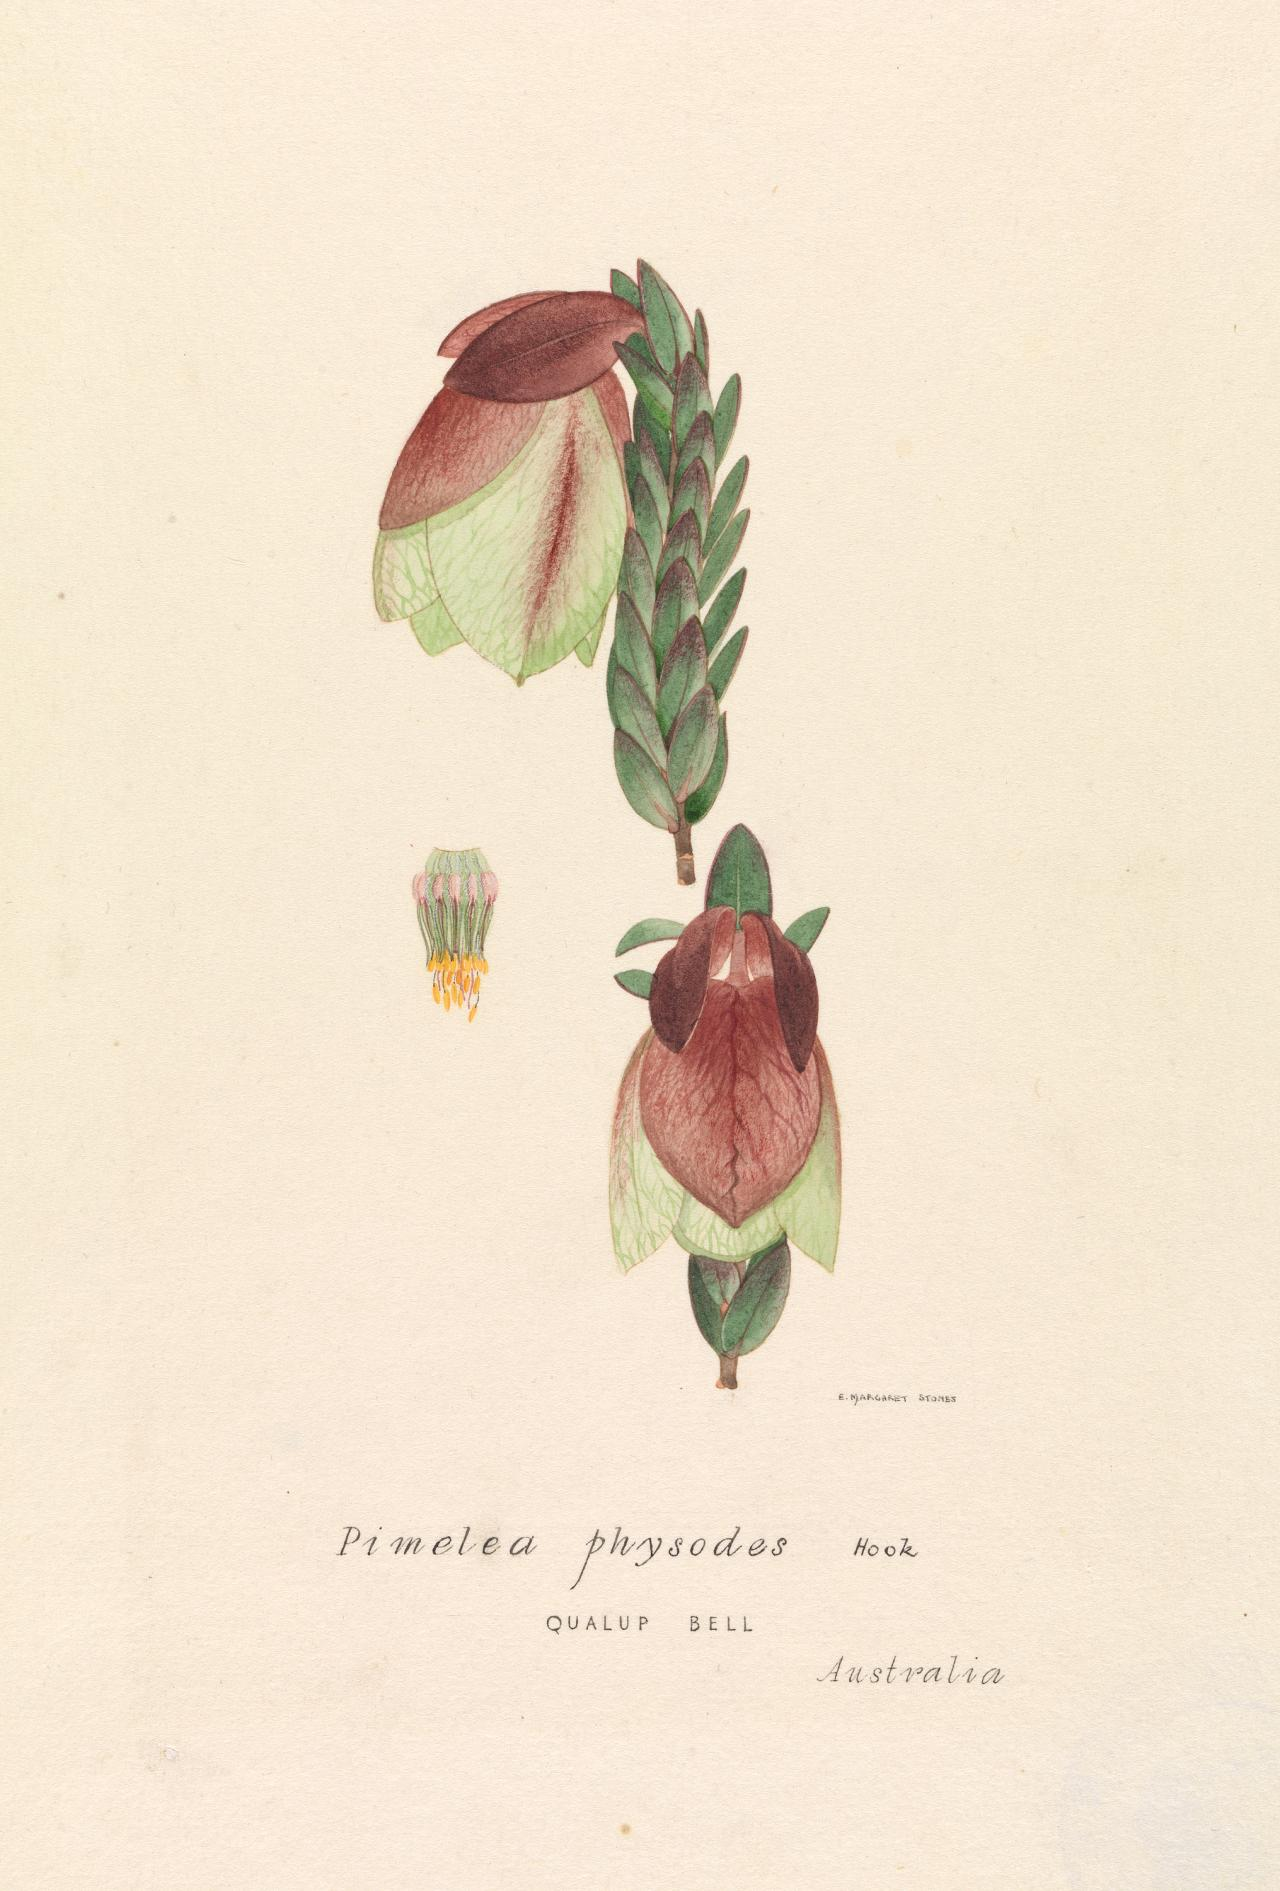 Pimelea physodes qualap bell